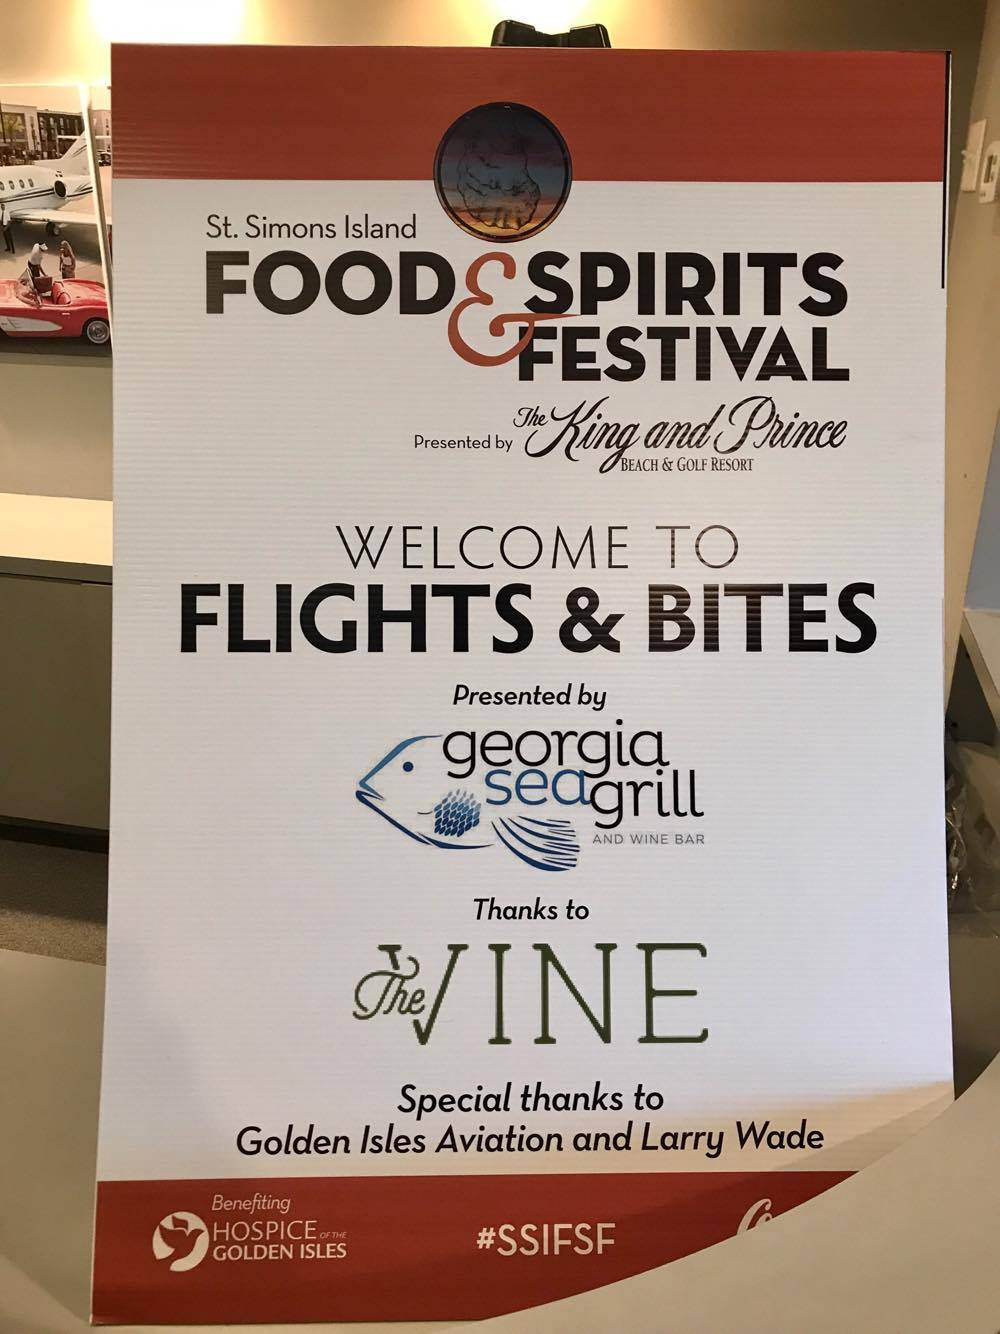 Flights and Bites - St Simons Island Food Spirits Festival